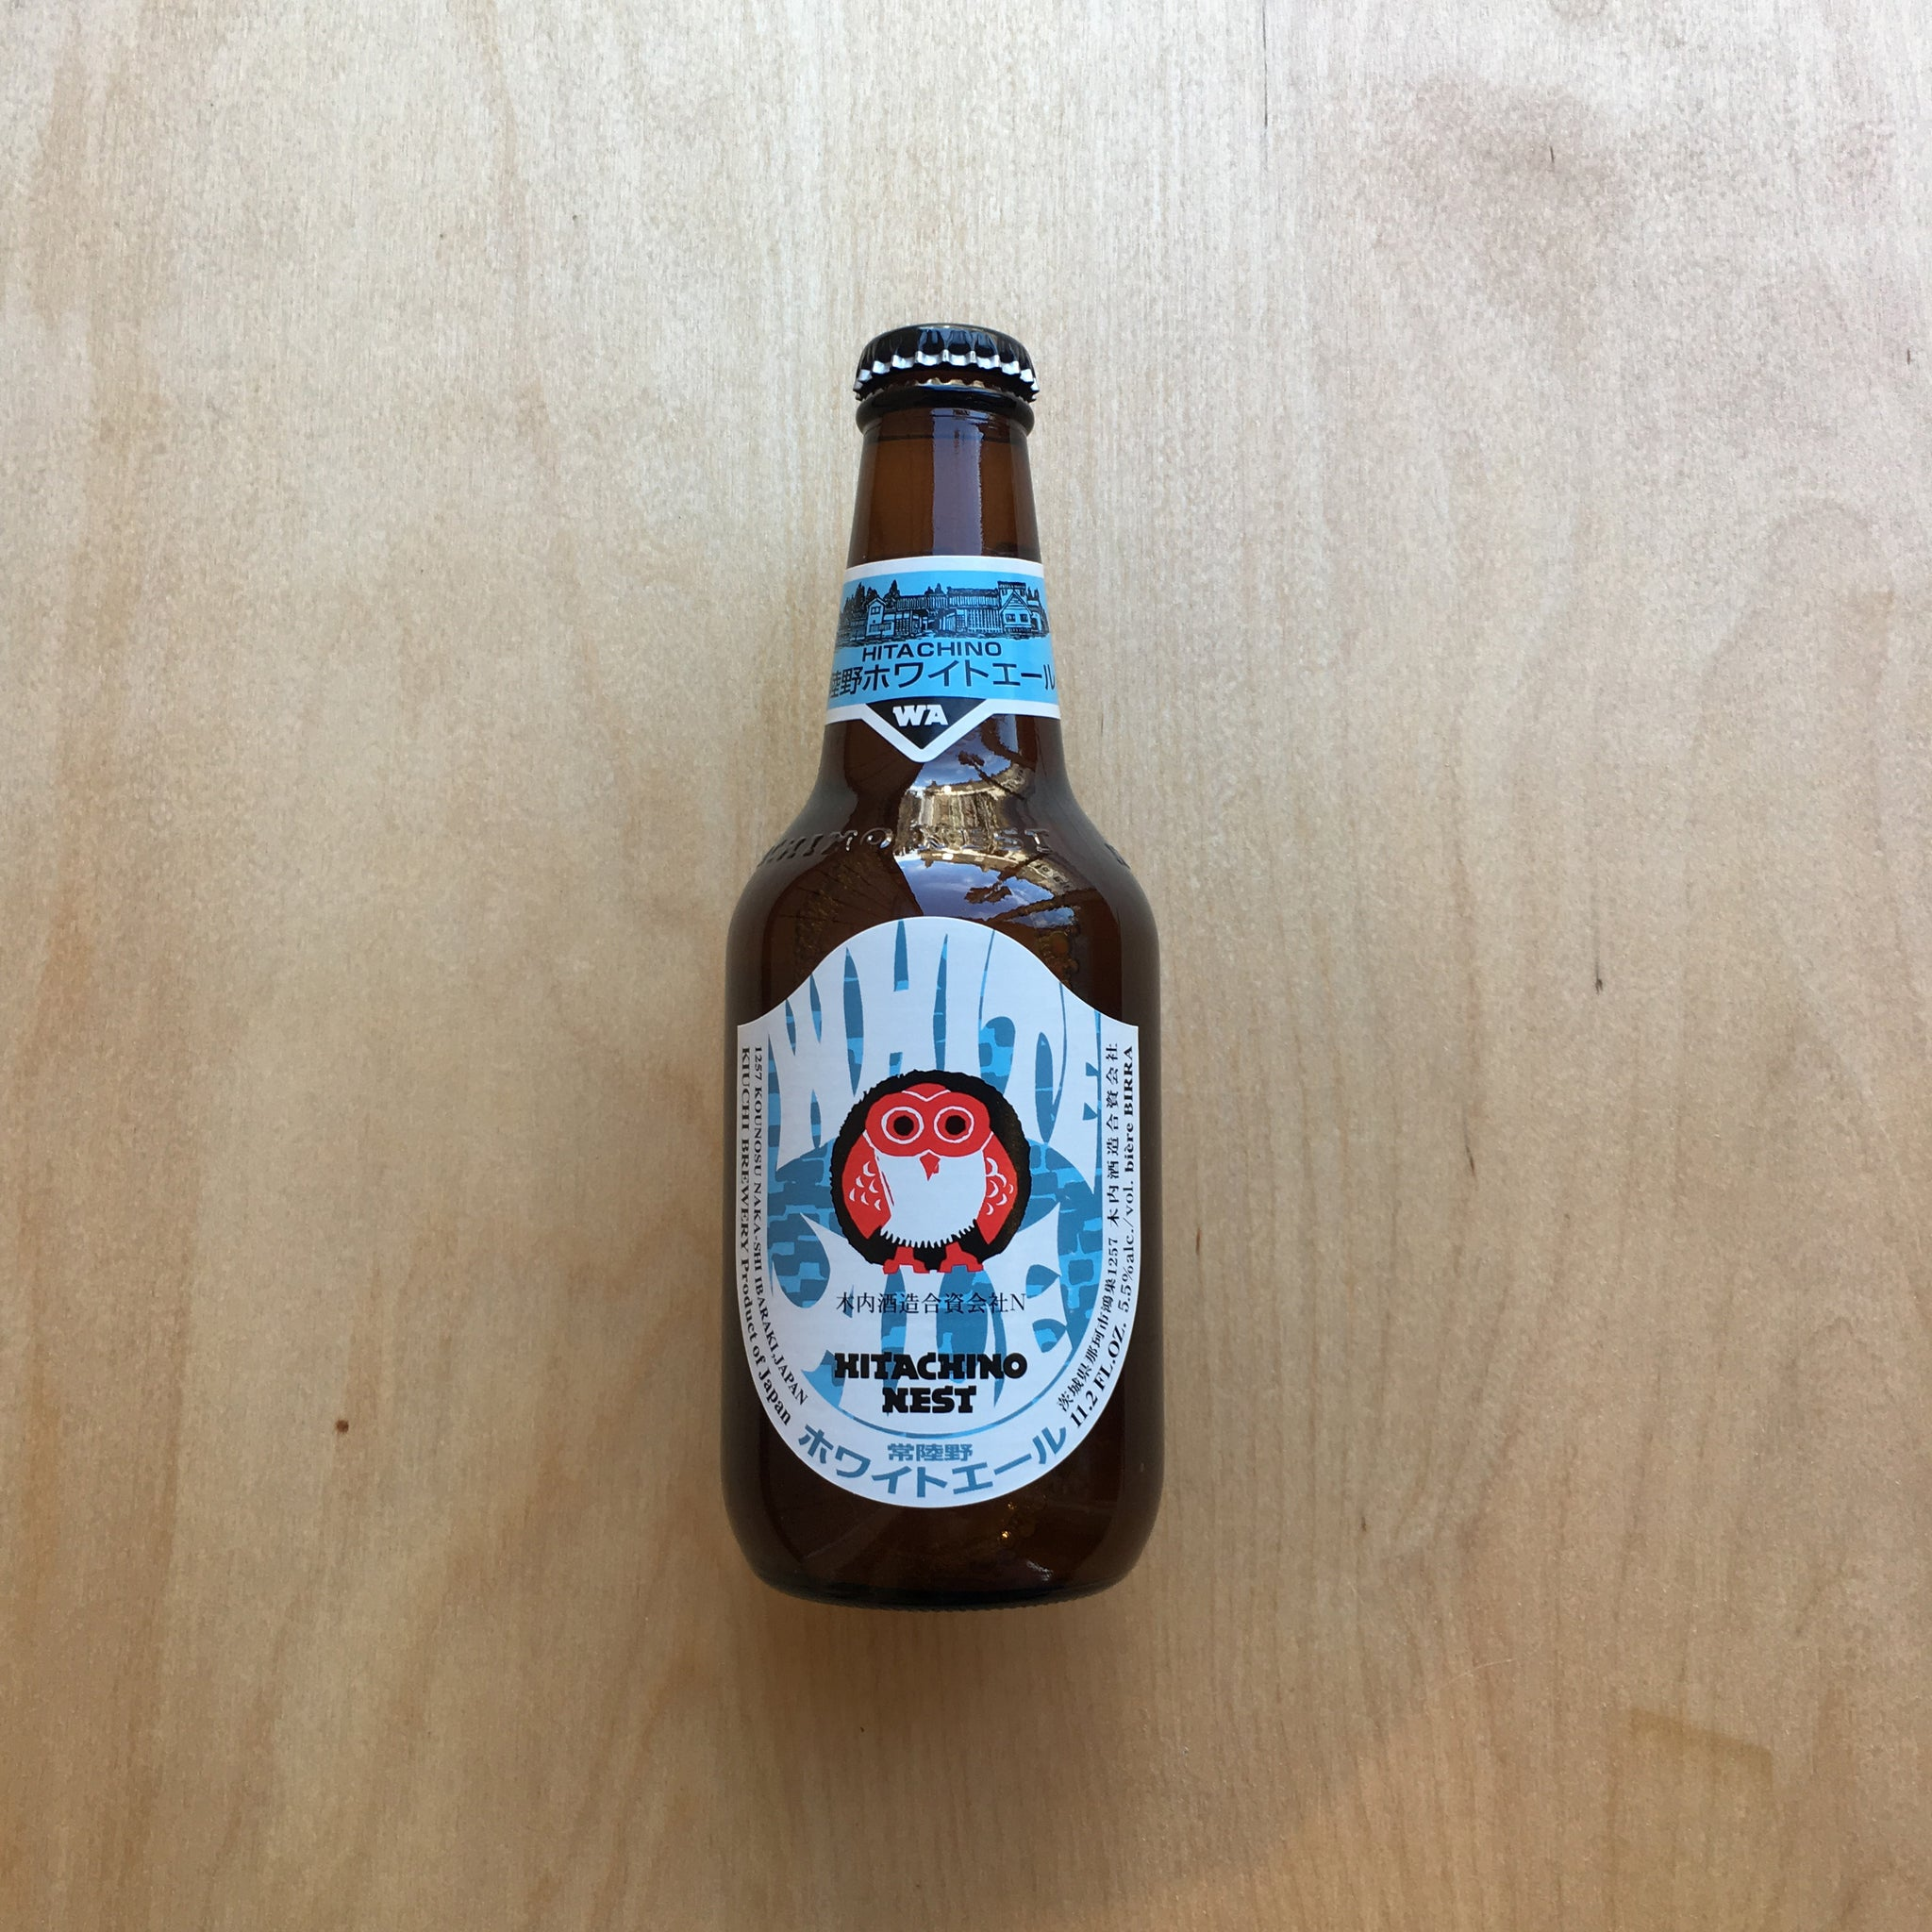 Hitachino Nest White Ale 5.5% (330ml)